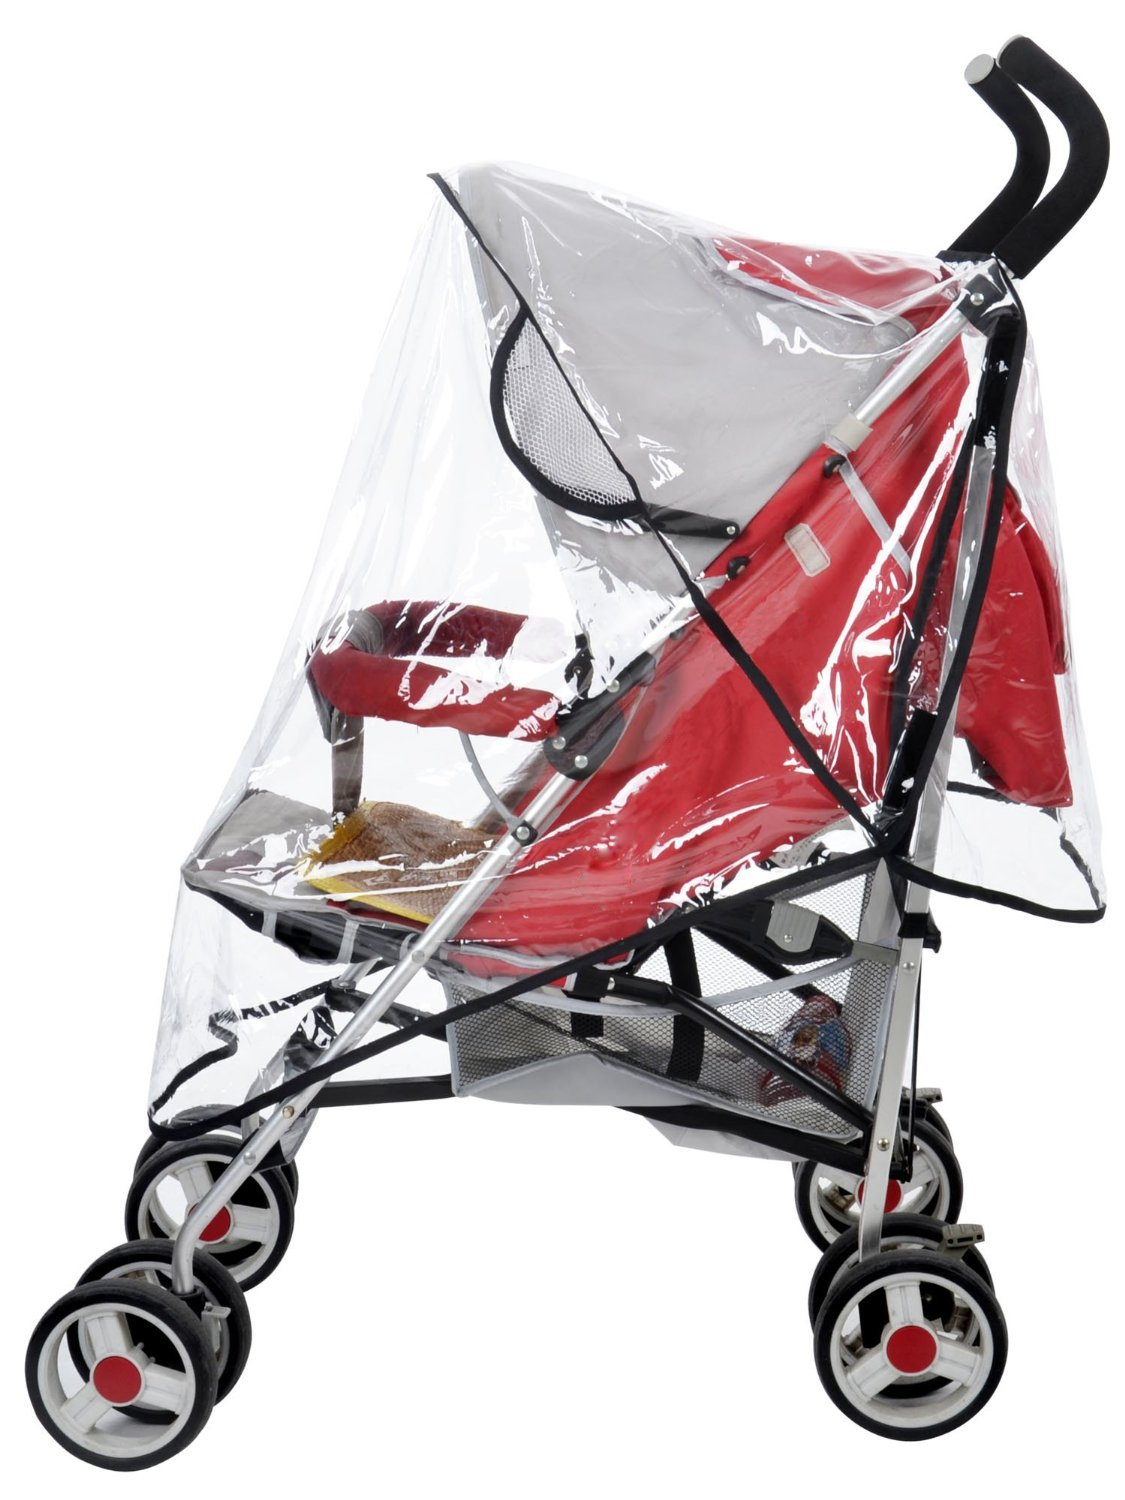 Universal Clear Waterproof Rain Cover Wind Shield Fit Most Strollers Pushchairs akezone